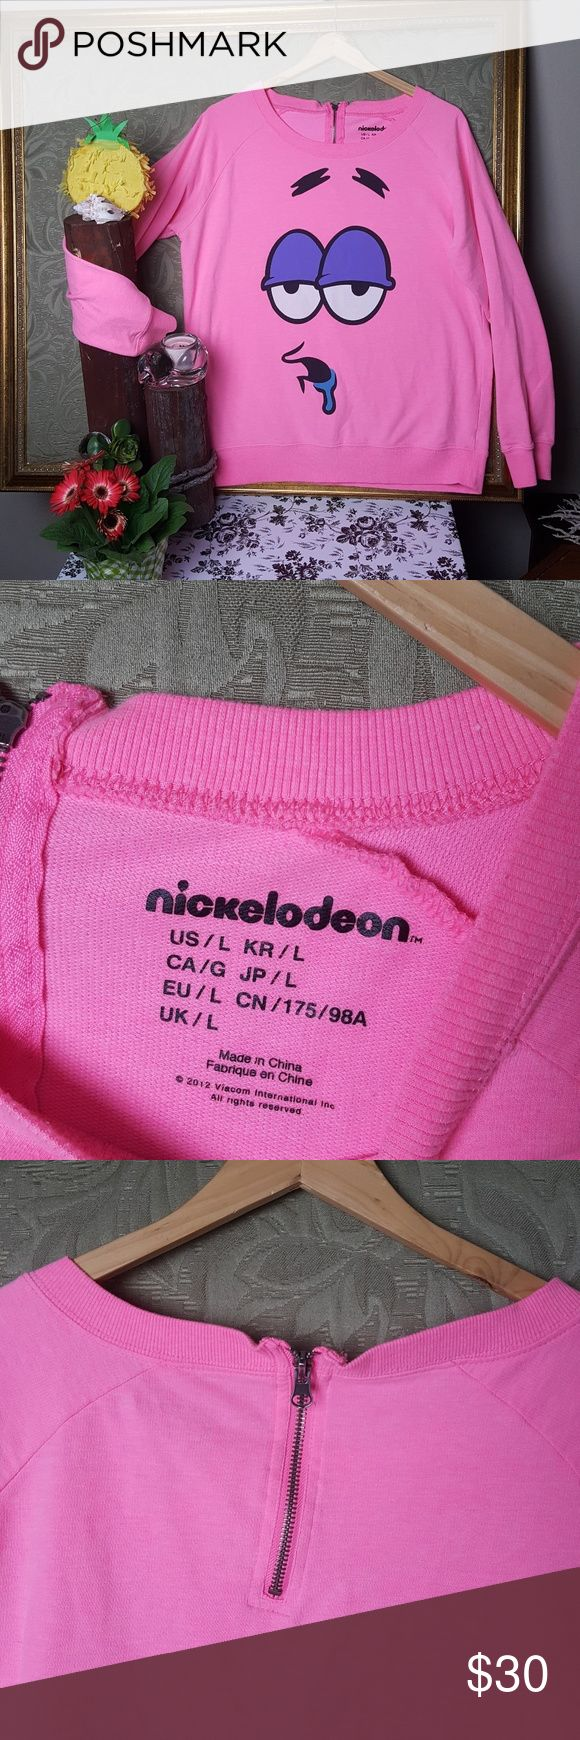 Pink Sweatshirt of Patrick from Spongebob L Patrick is the best! This sweatshirt says it all! Drooling at all :-) in excellent used condition size large. Nickelodeon Tops Sweatshirts & Hoodies